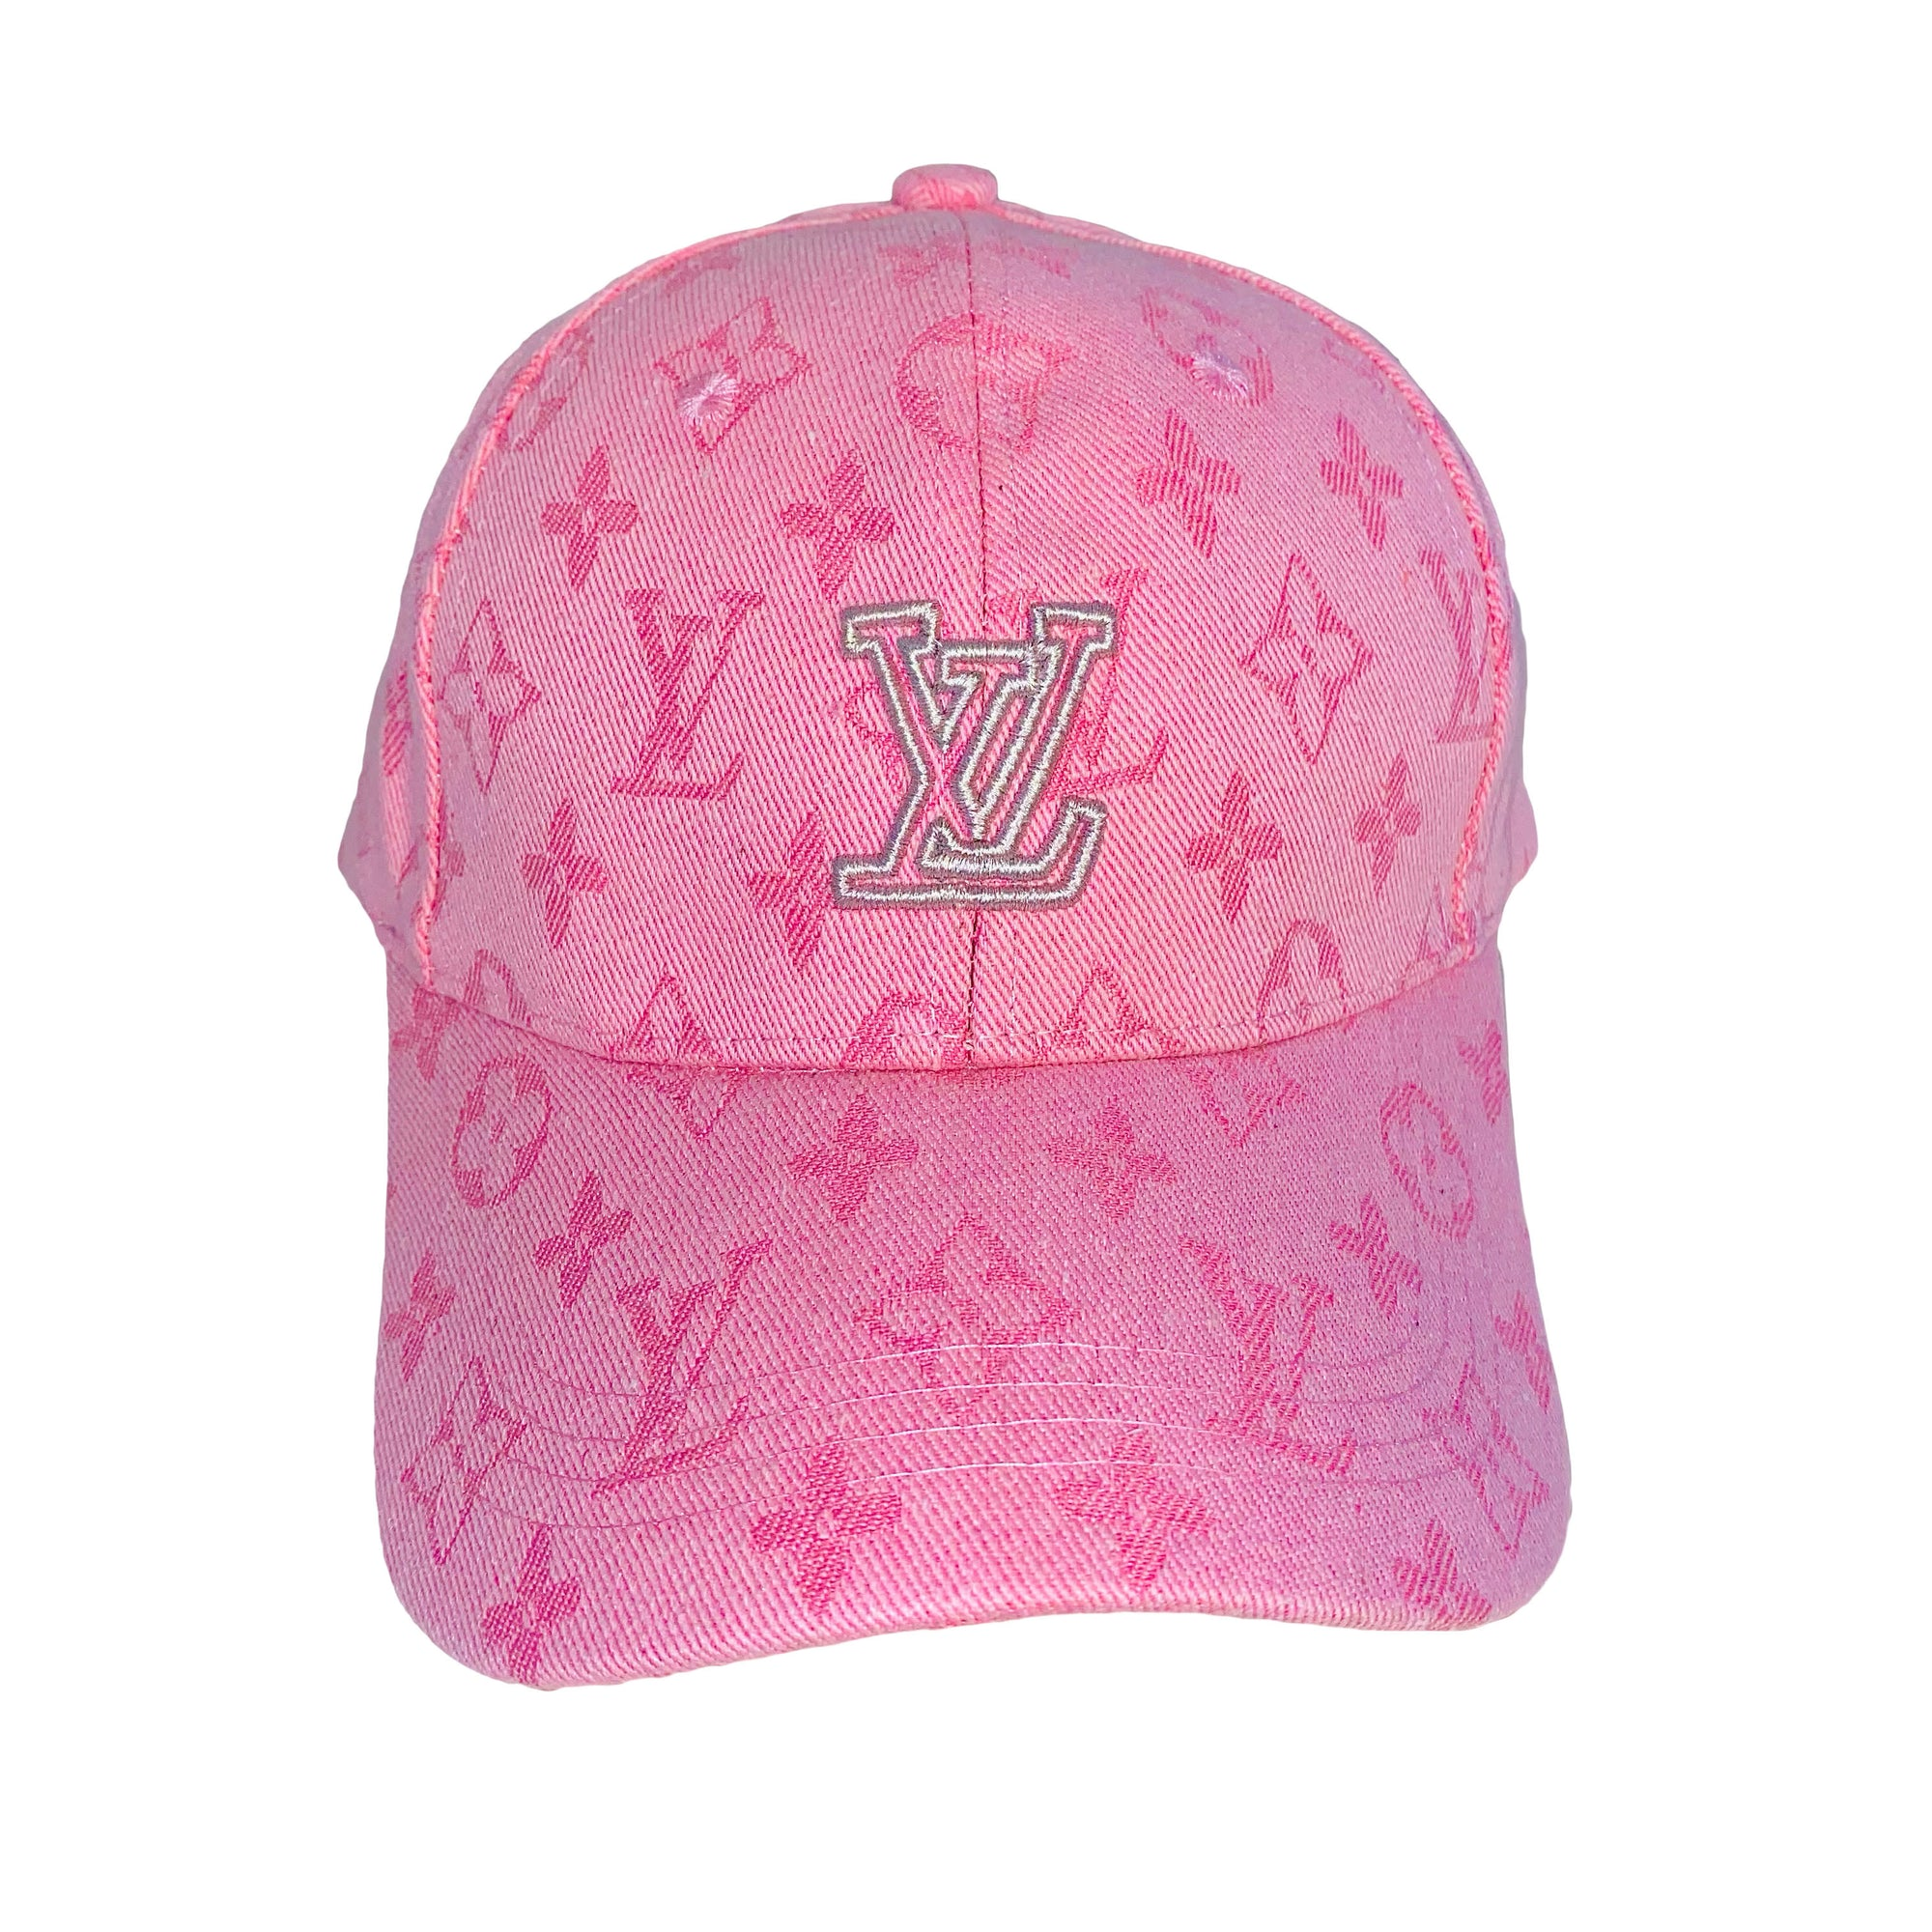 Fashion Cap Pink